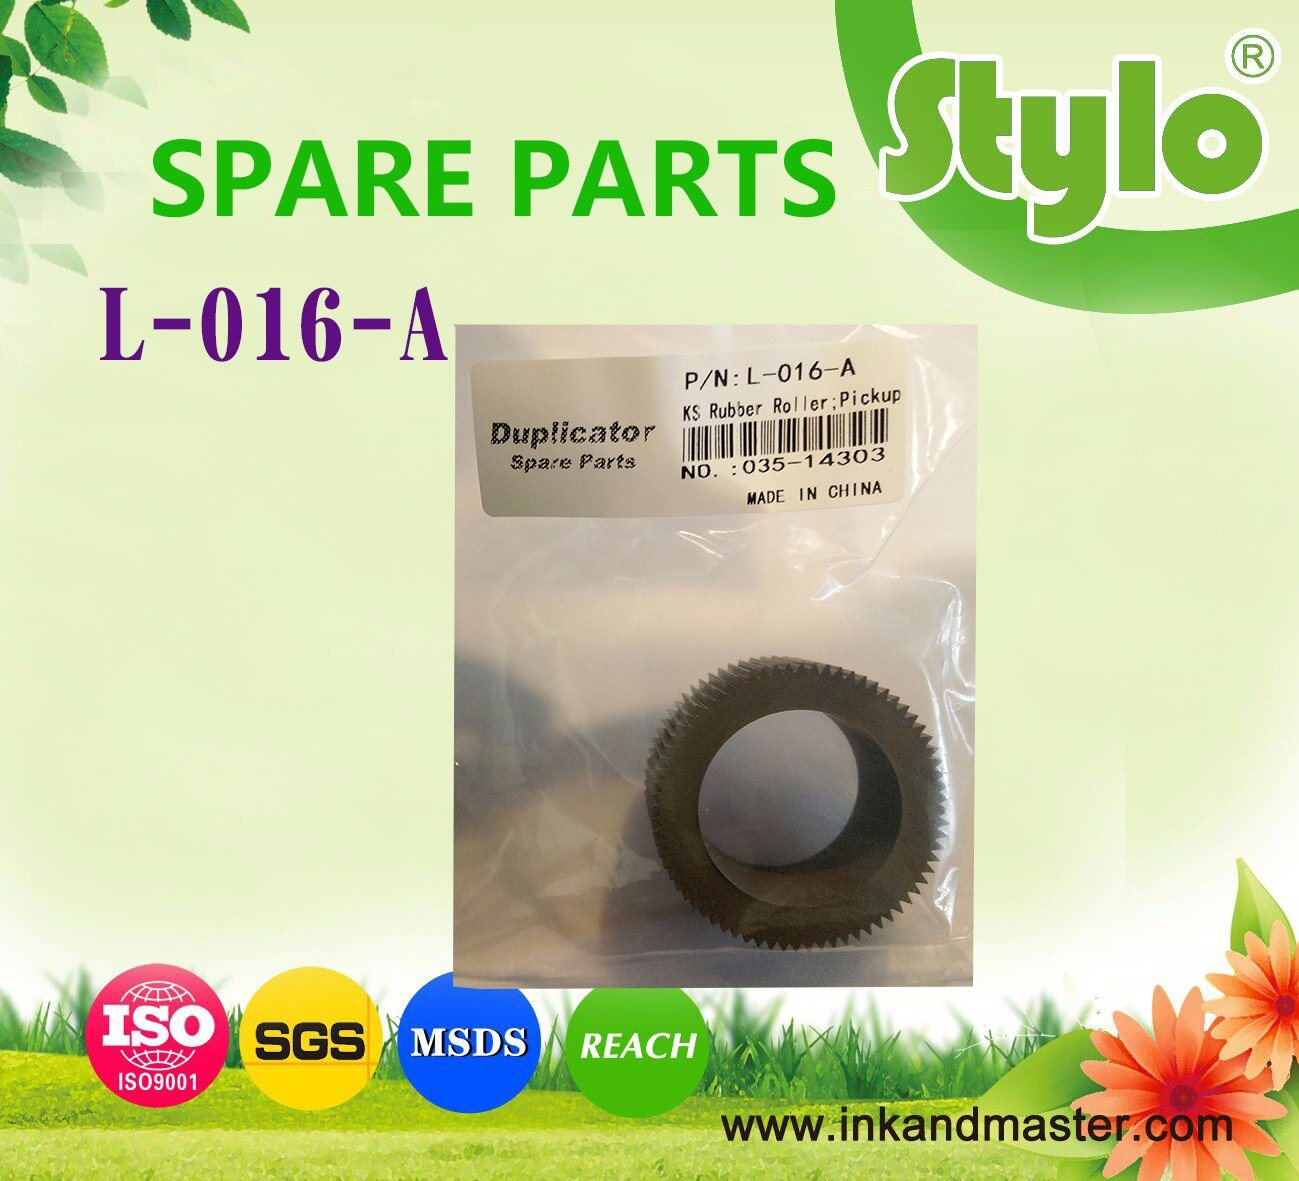 Pickup Roller for Use in Riso Hc5500 Hc5000 Spare Parts 035-14303-001 035-14303 Feed Tire